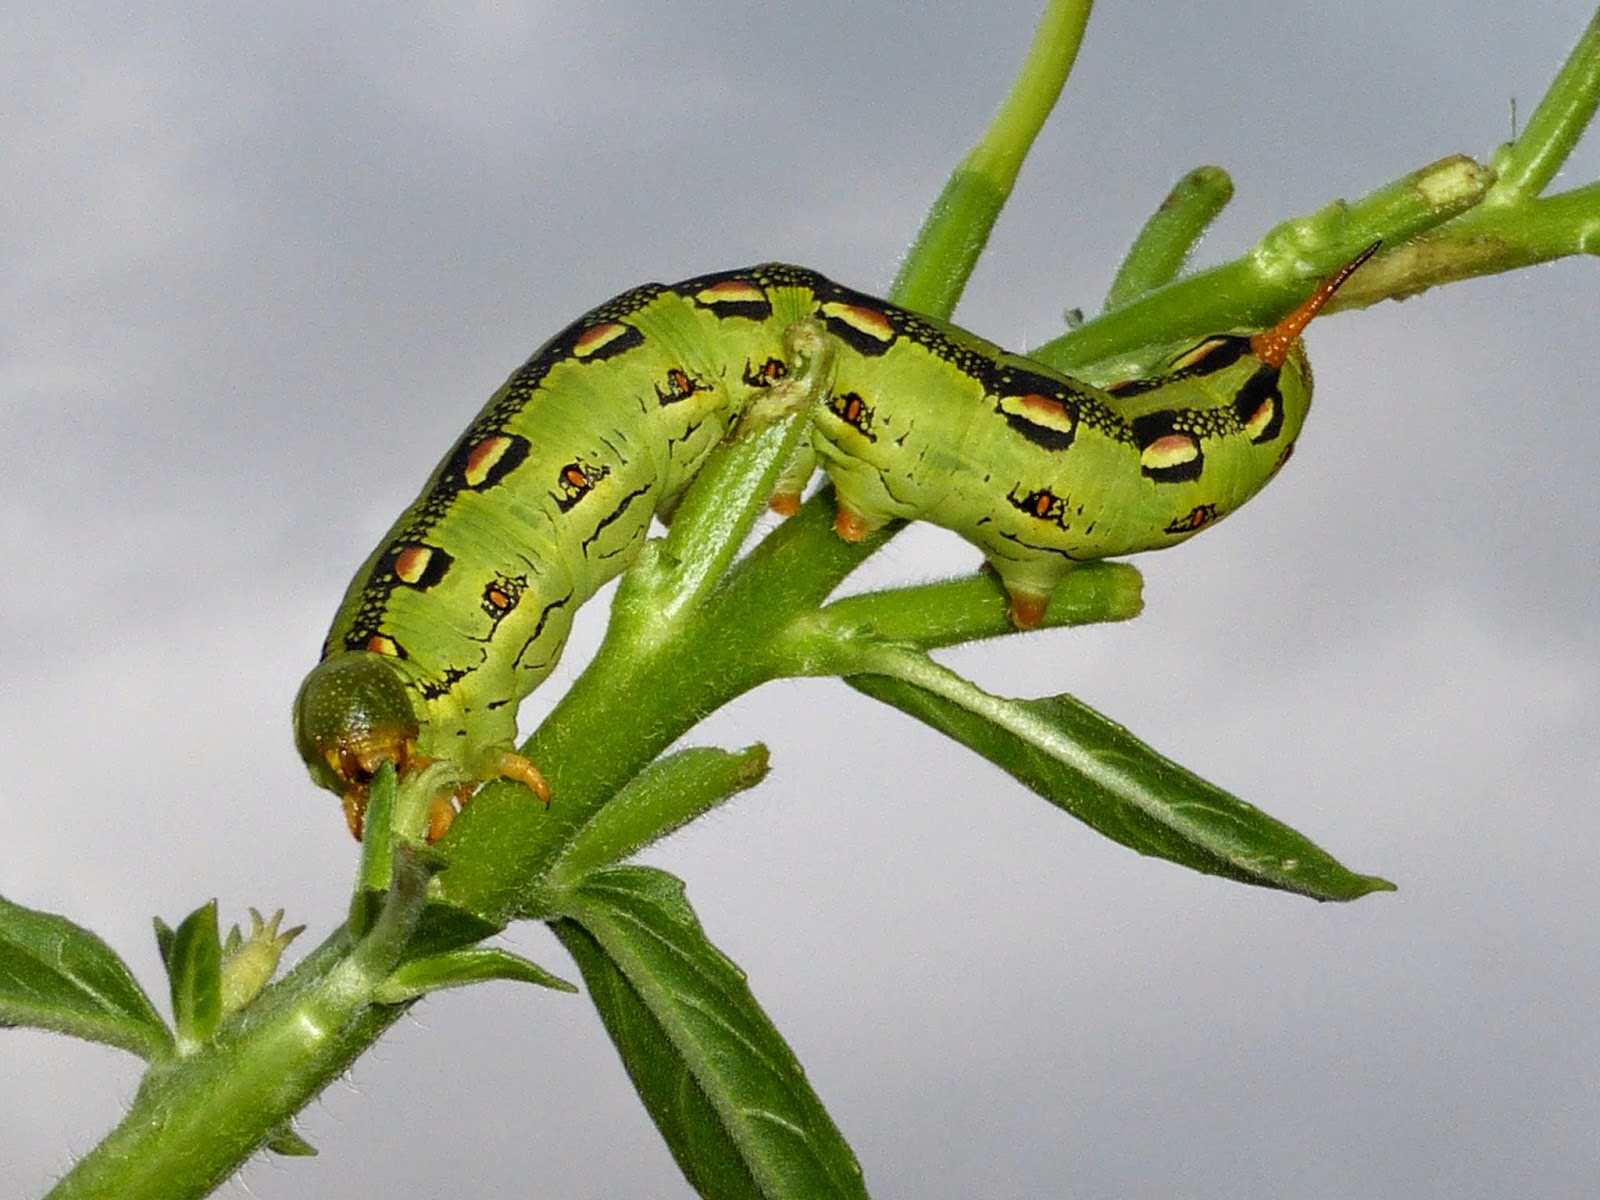 Hyles lineata caterpillar